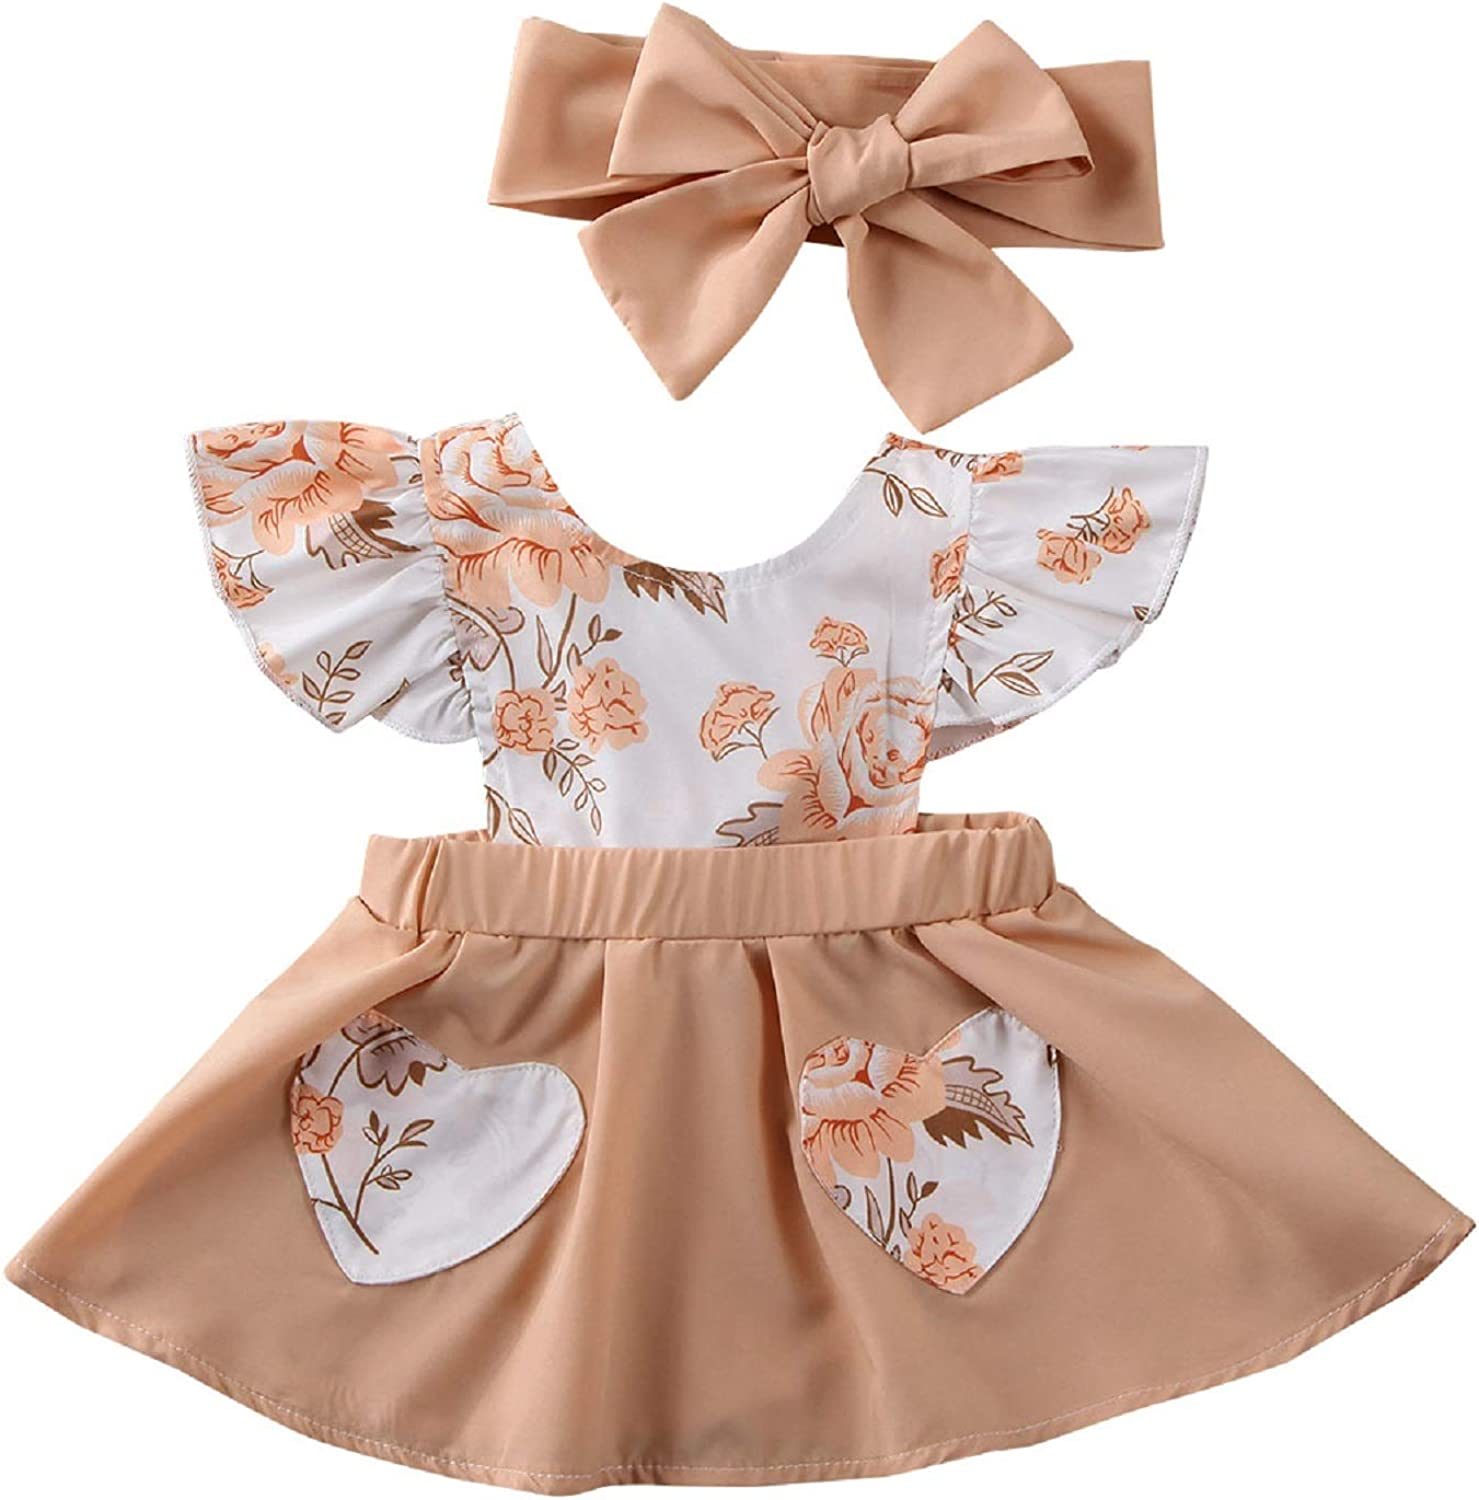 Max 75% OFF KIDSA Infant Baby Girl depot Floral Dress Outfit Backle Sleeve Ruffles